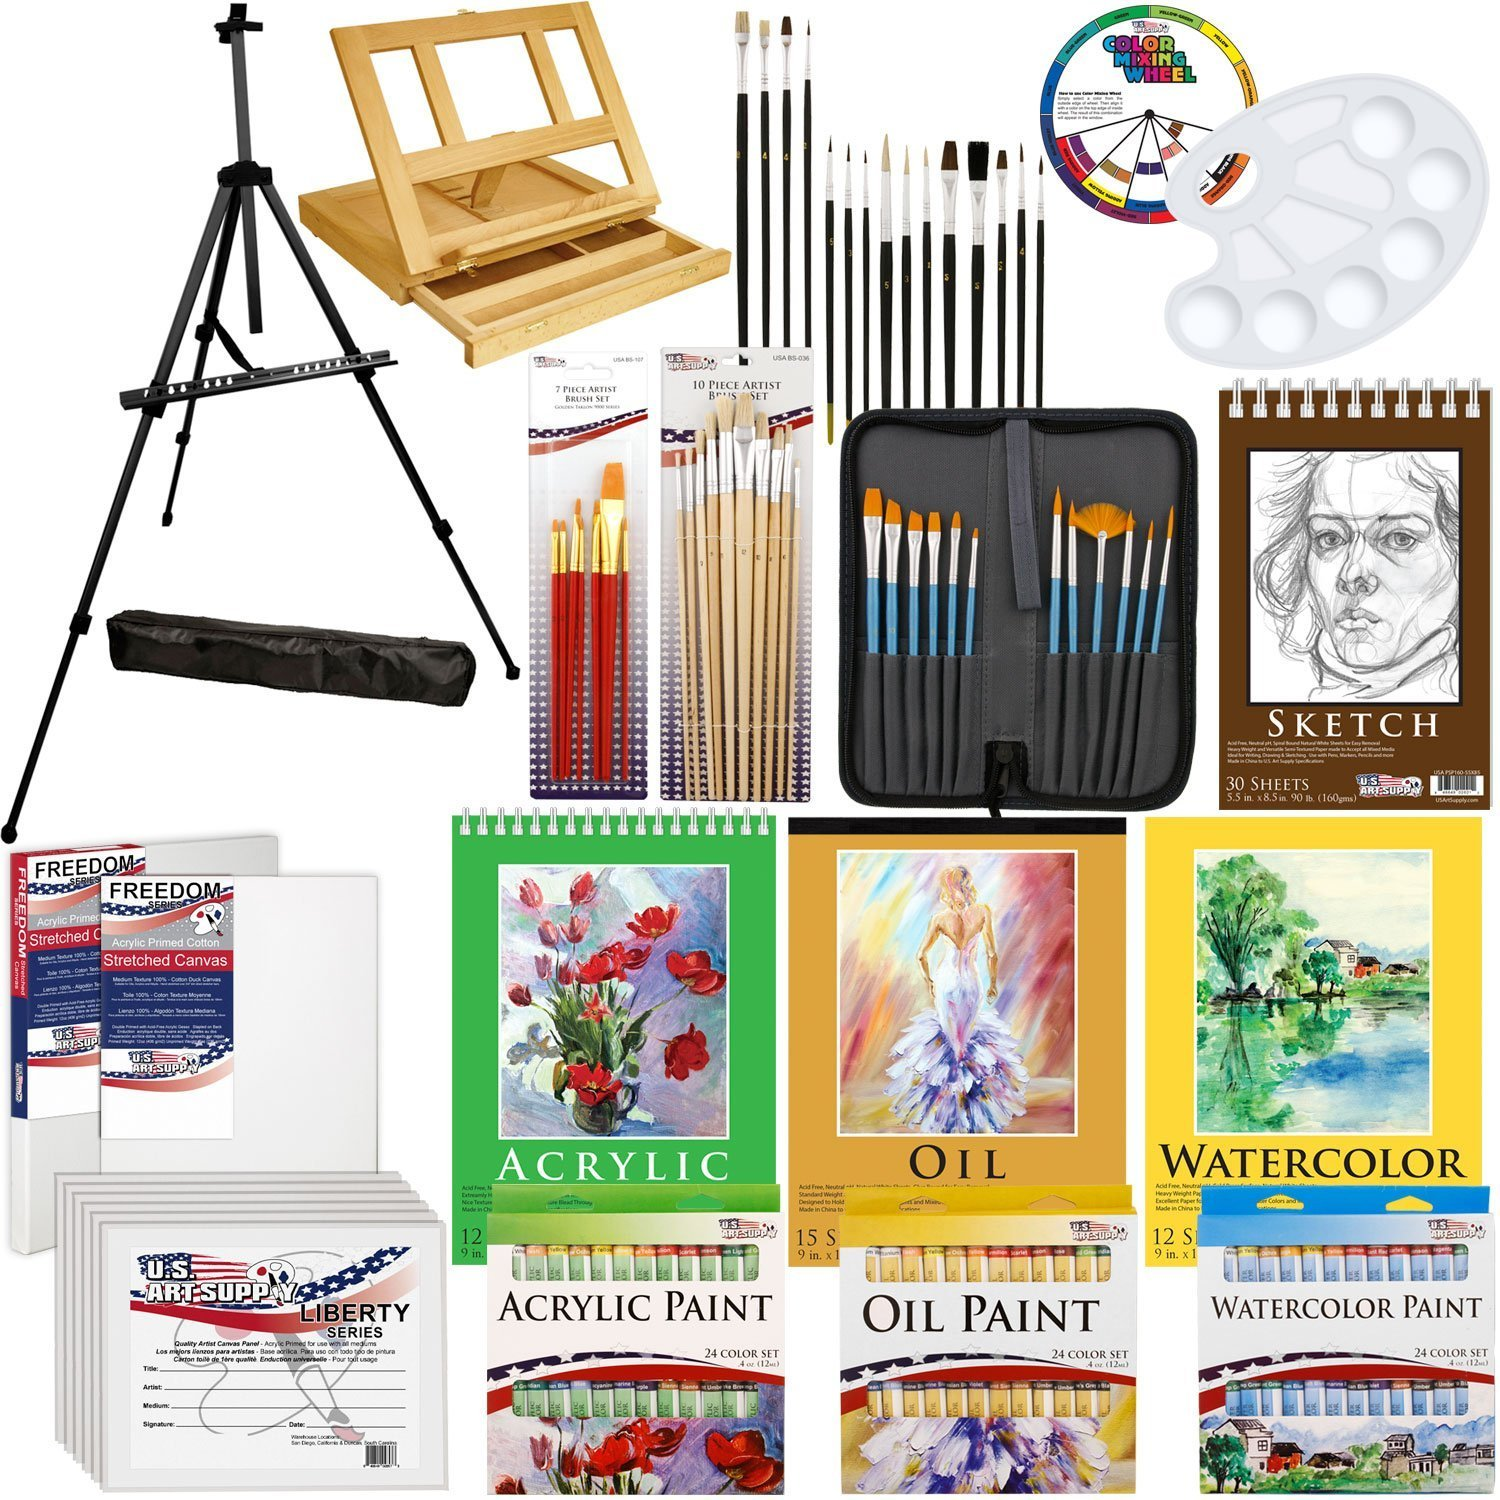 US Art Supply 133pc Deluxe Artist Painting Set with Aluminum and Wood Easels, Paint and Accessories KIT-ALL-D130